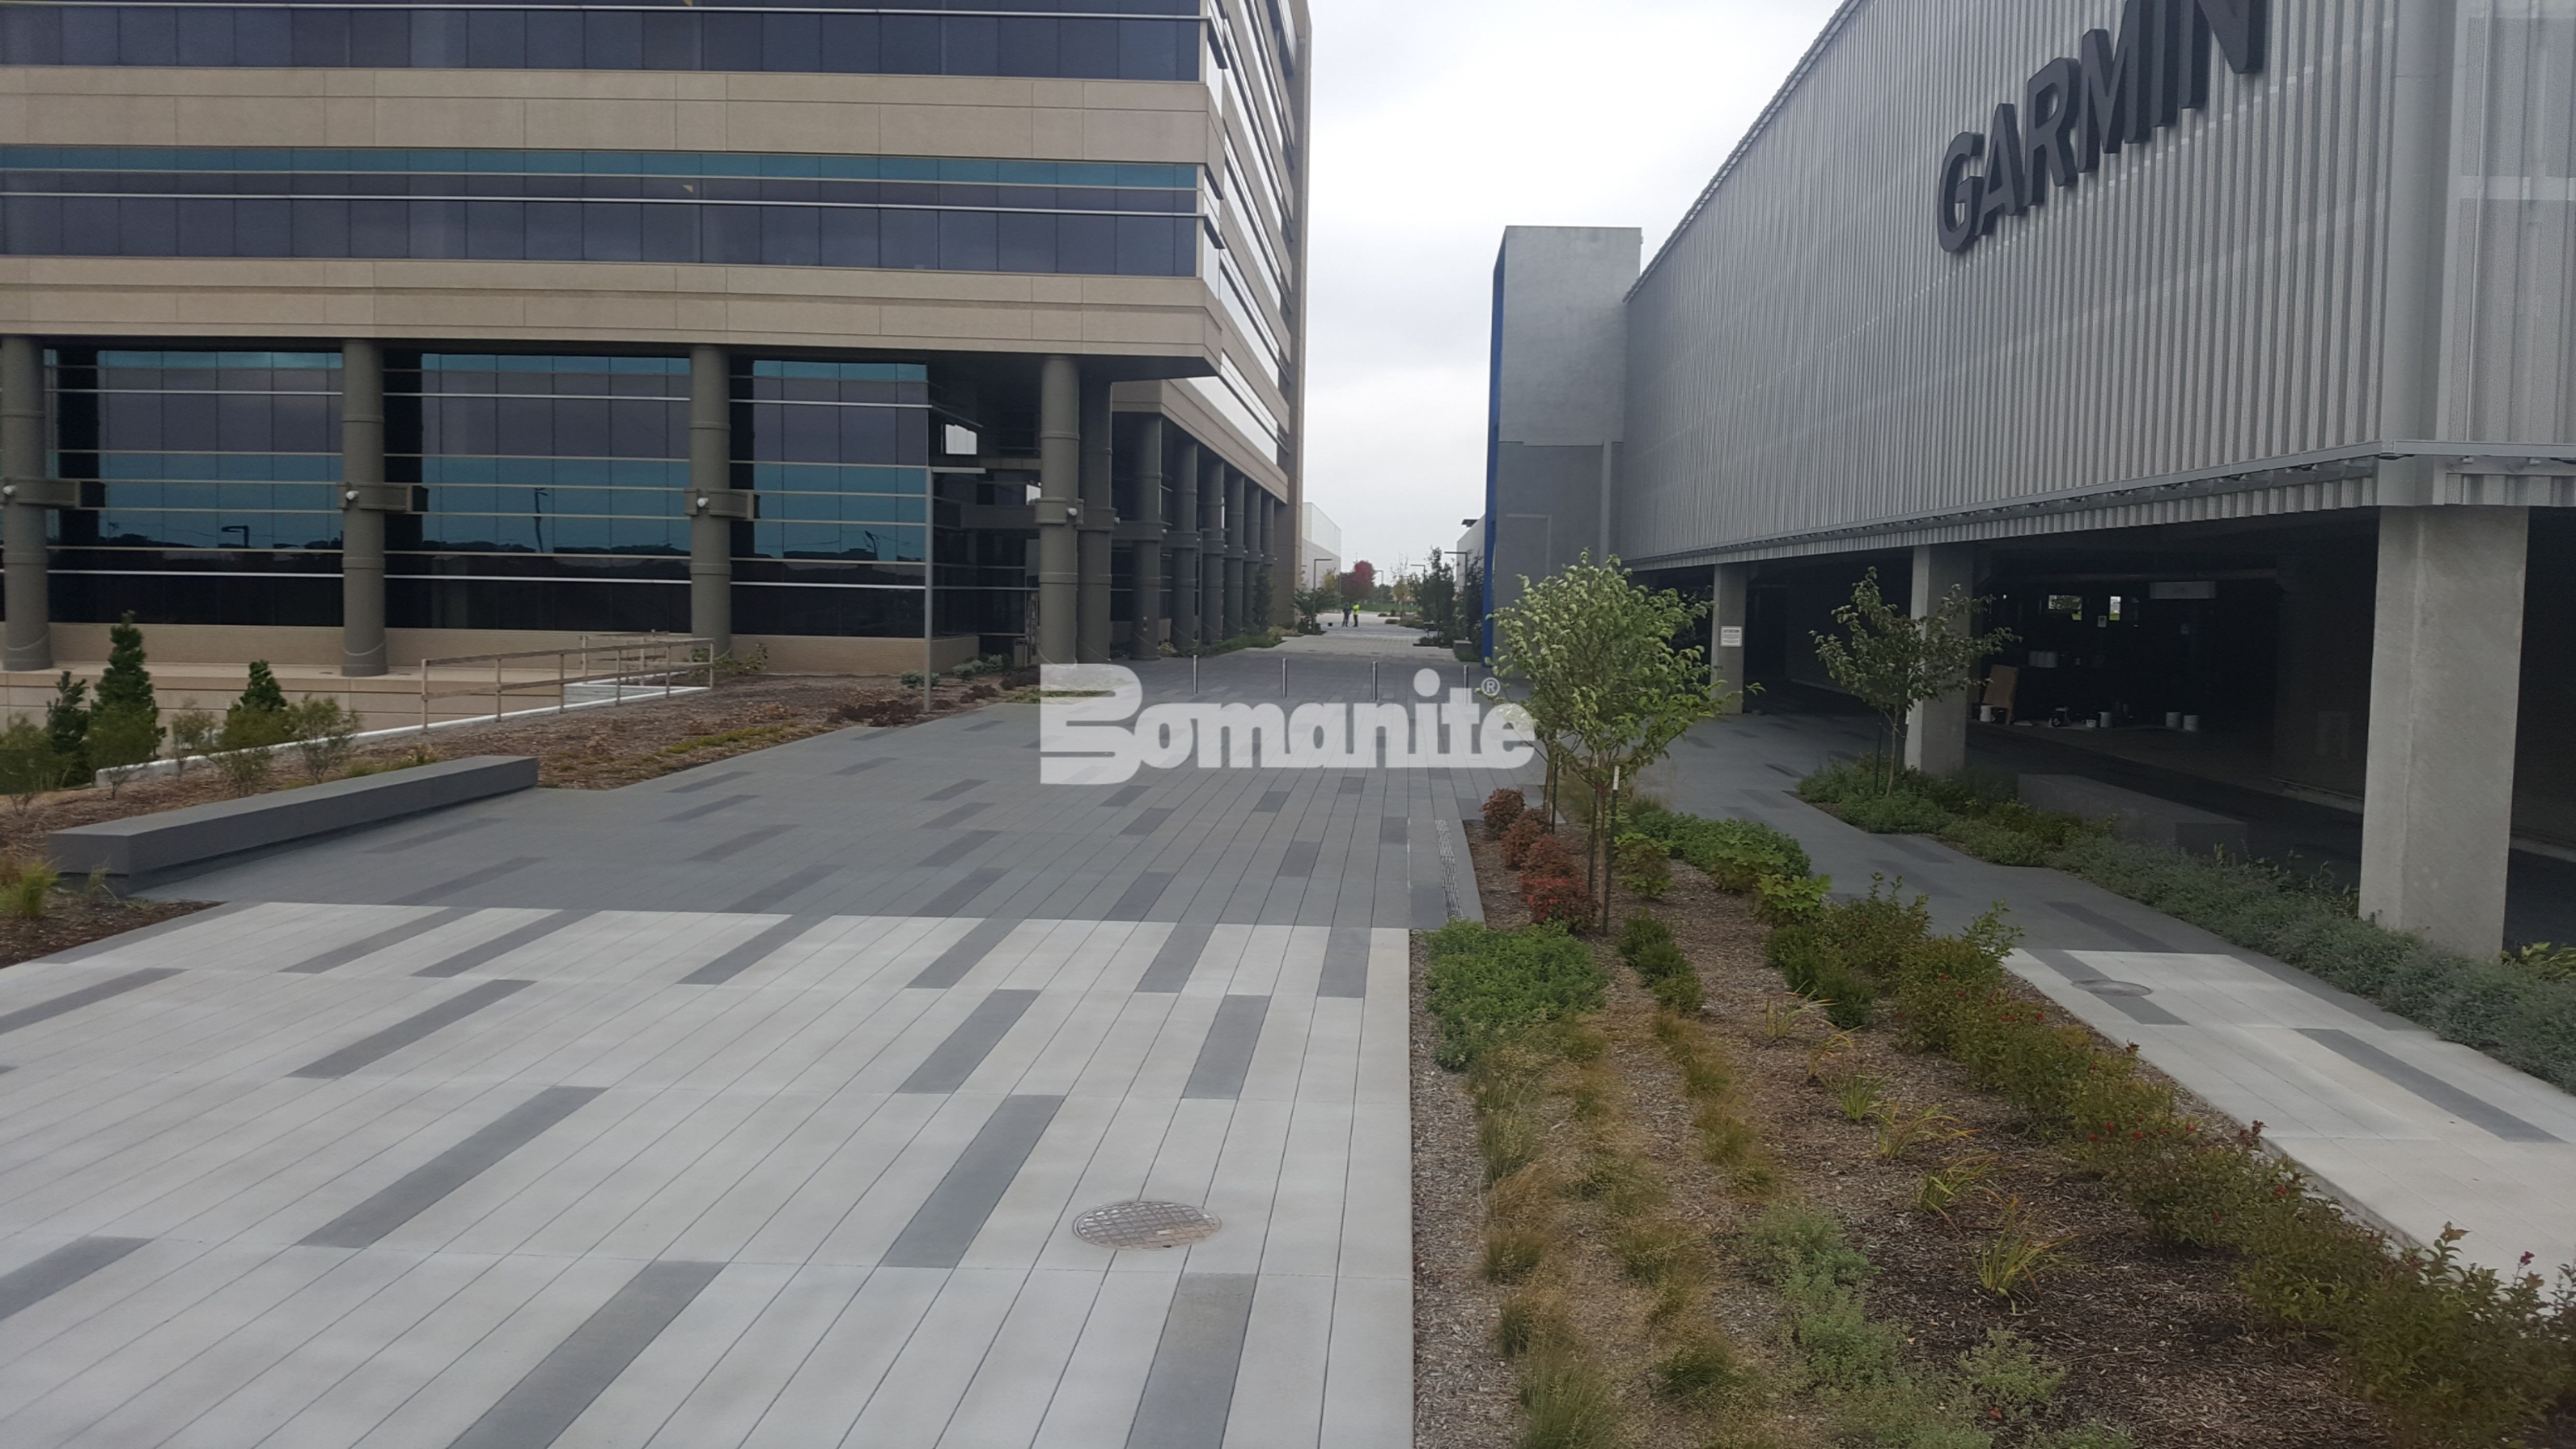 Bomanite Sandscape Texture at Garmin Expansion Pedestria Plaza in Olathe, KS